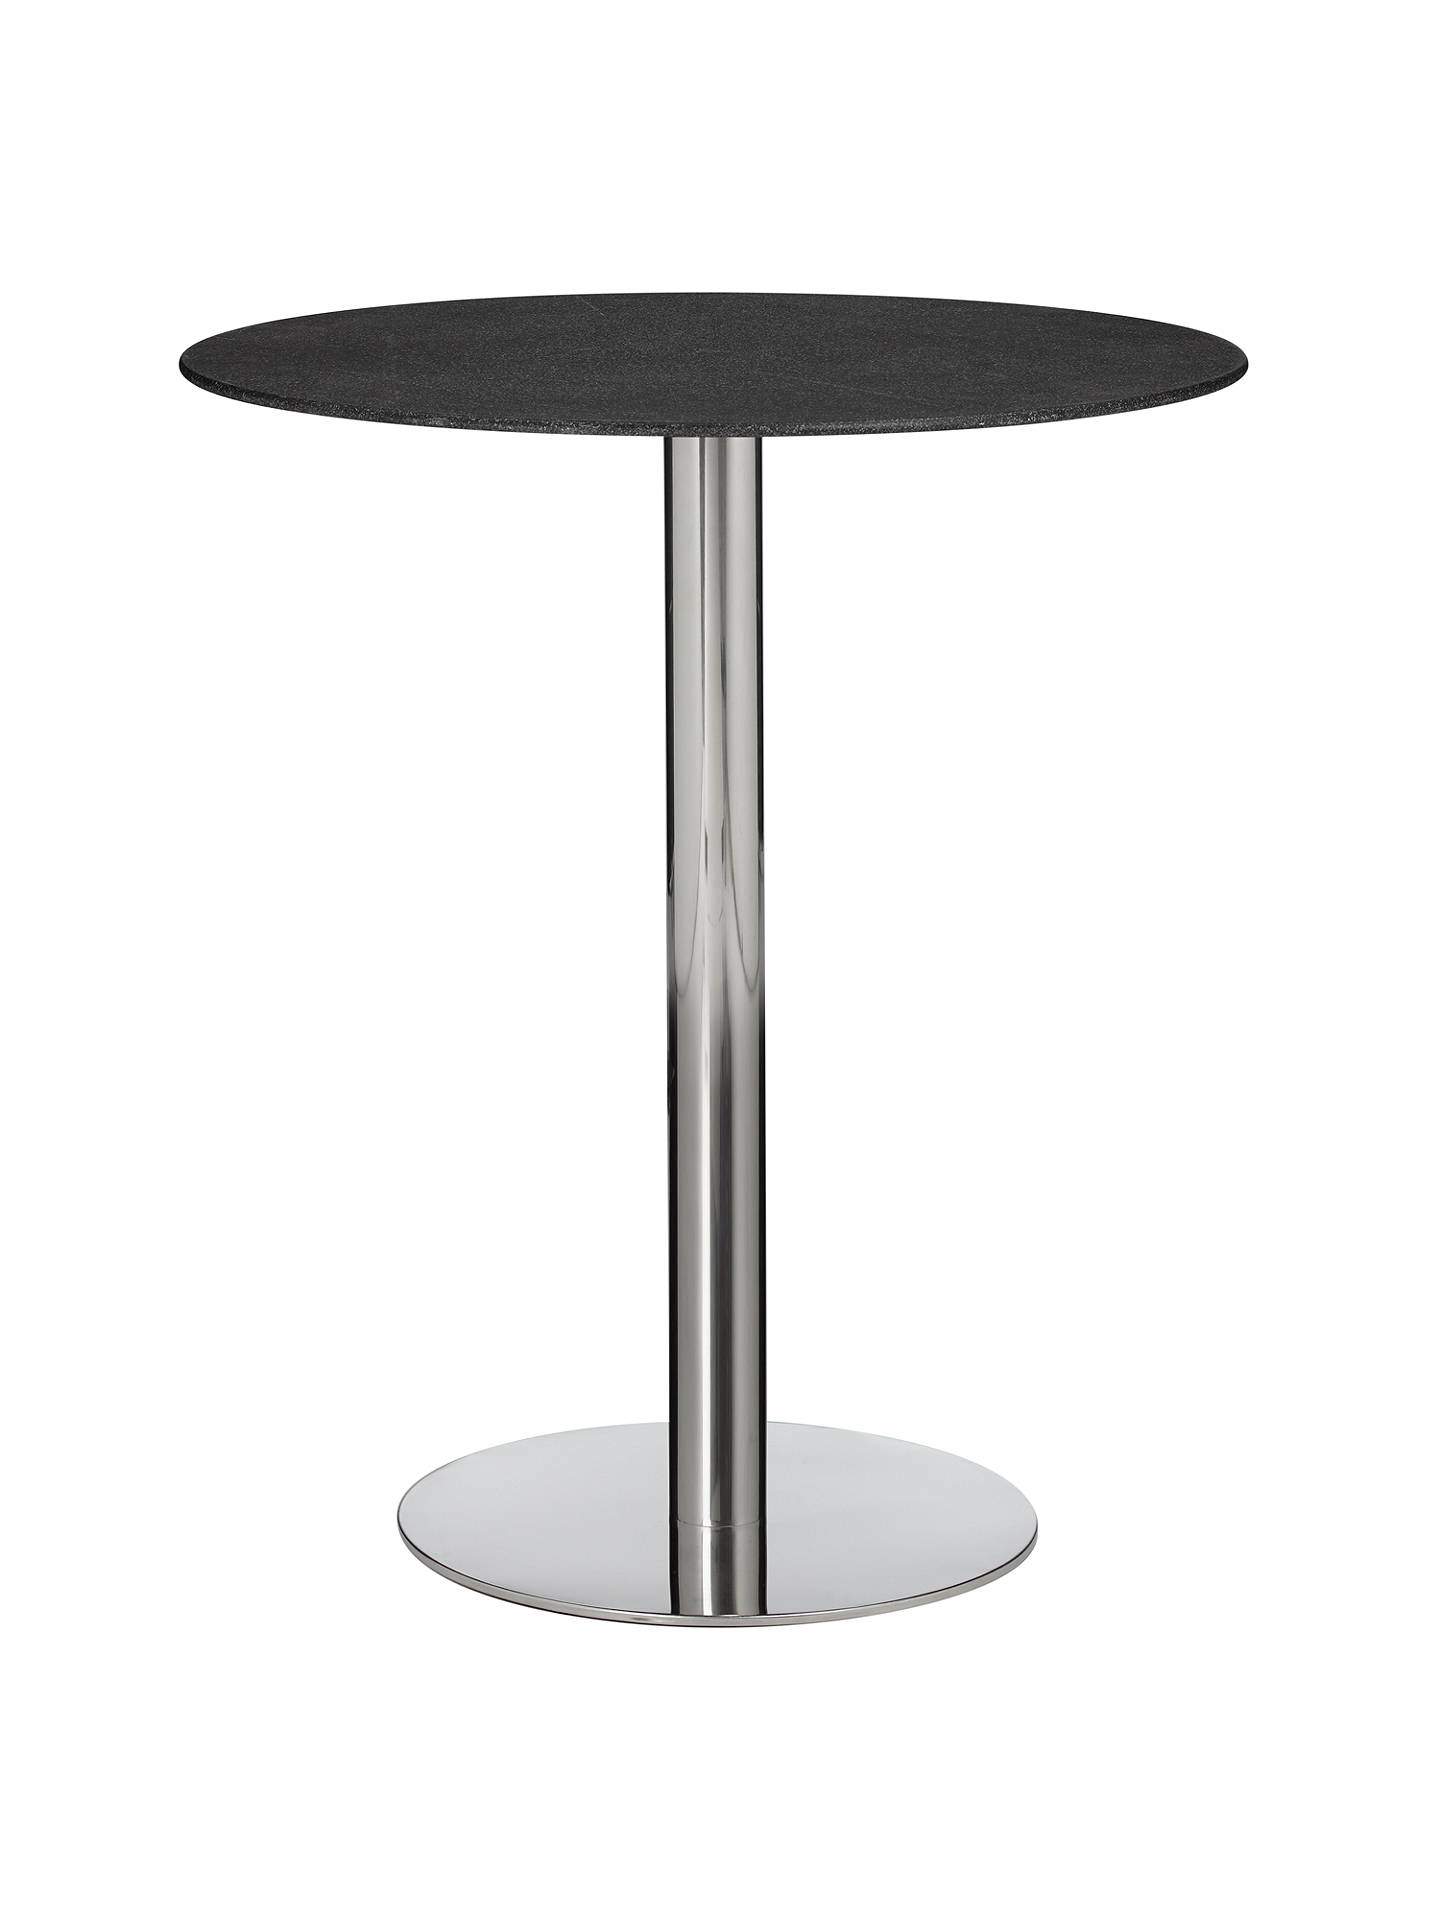 Buy john lewis enzo stone effect 2 seater glass top dining table black online at